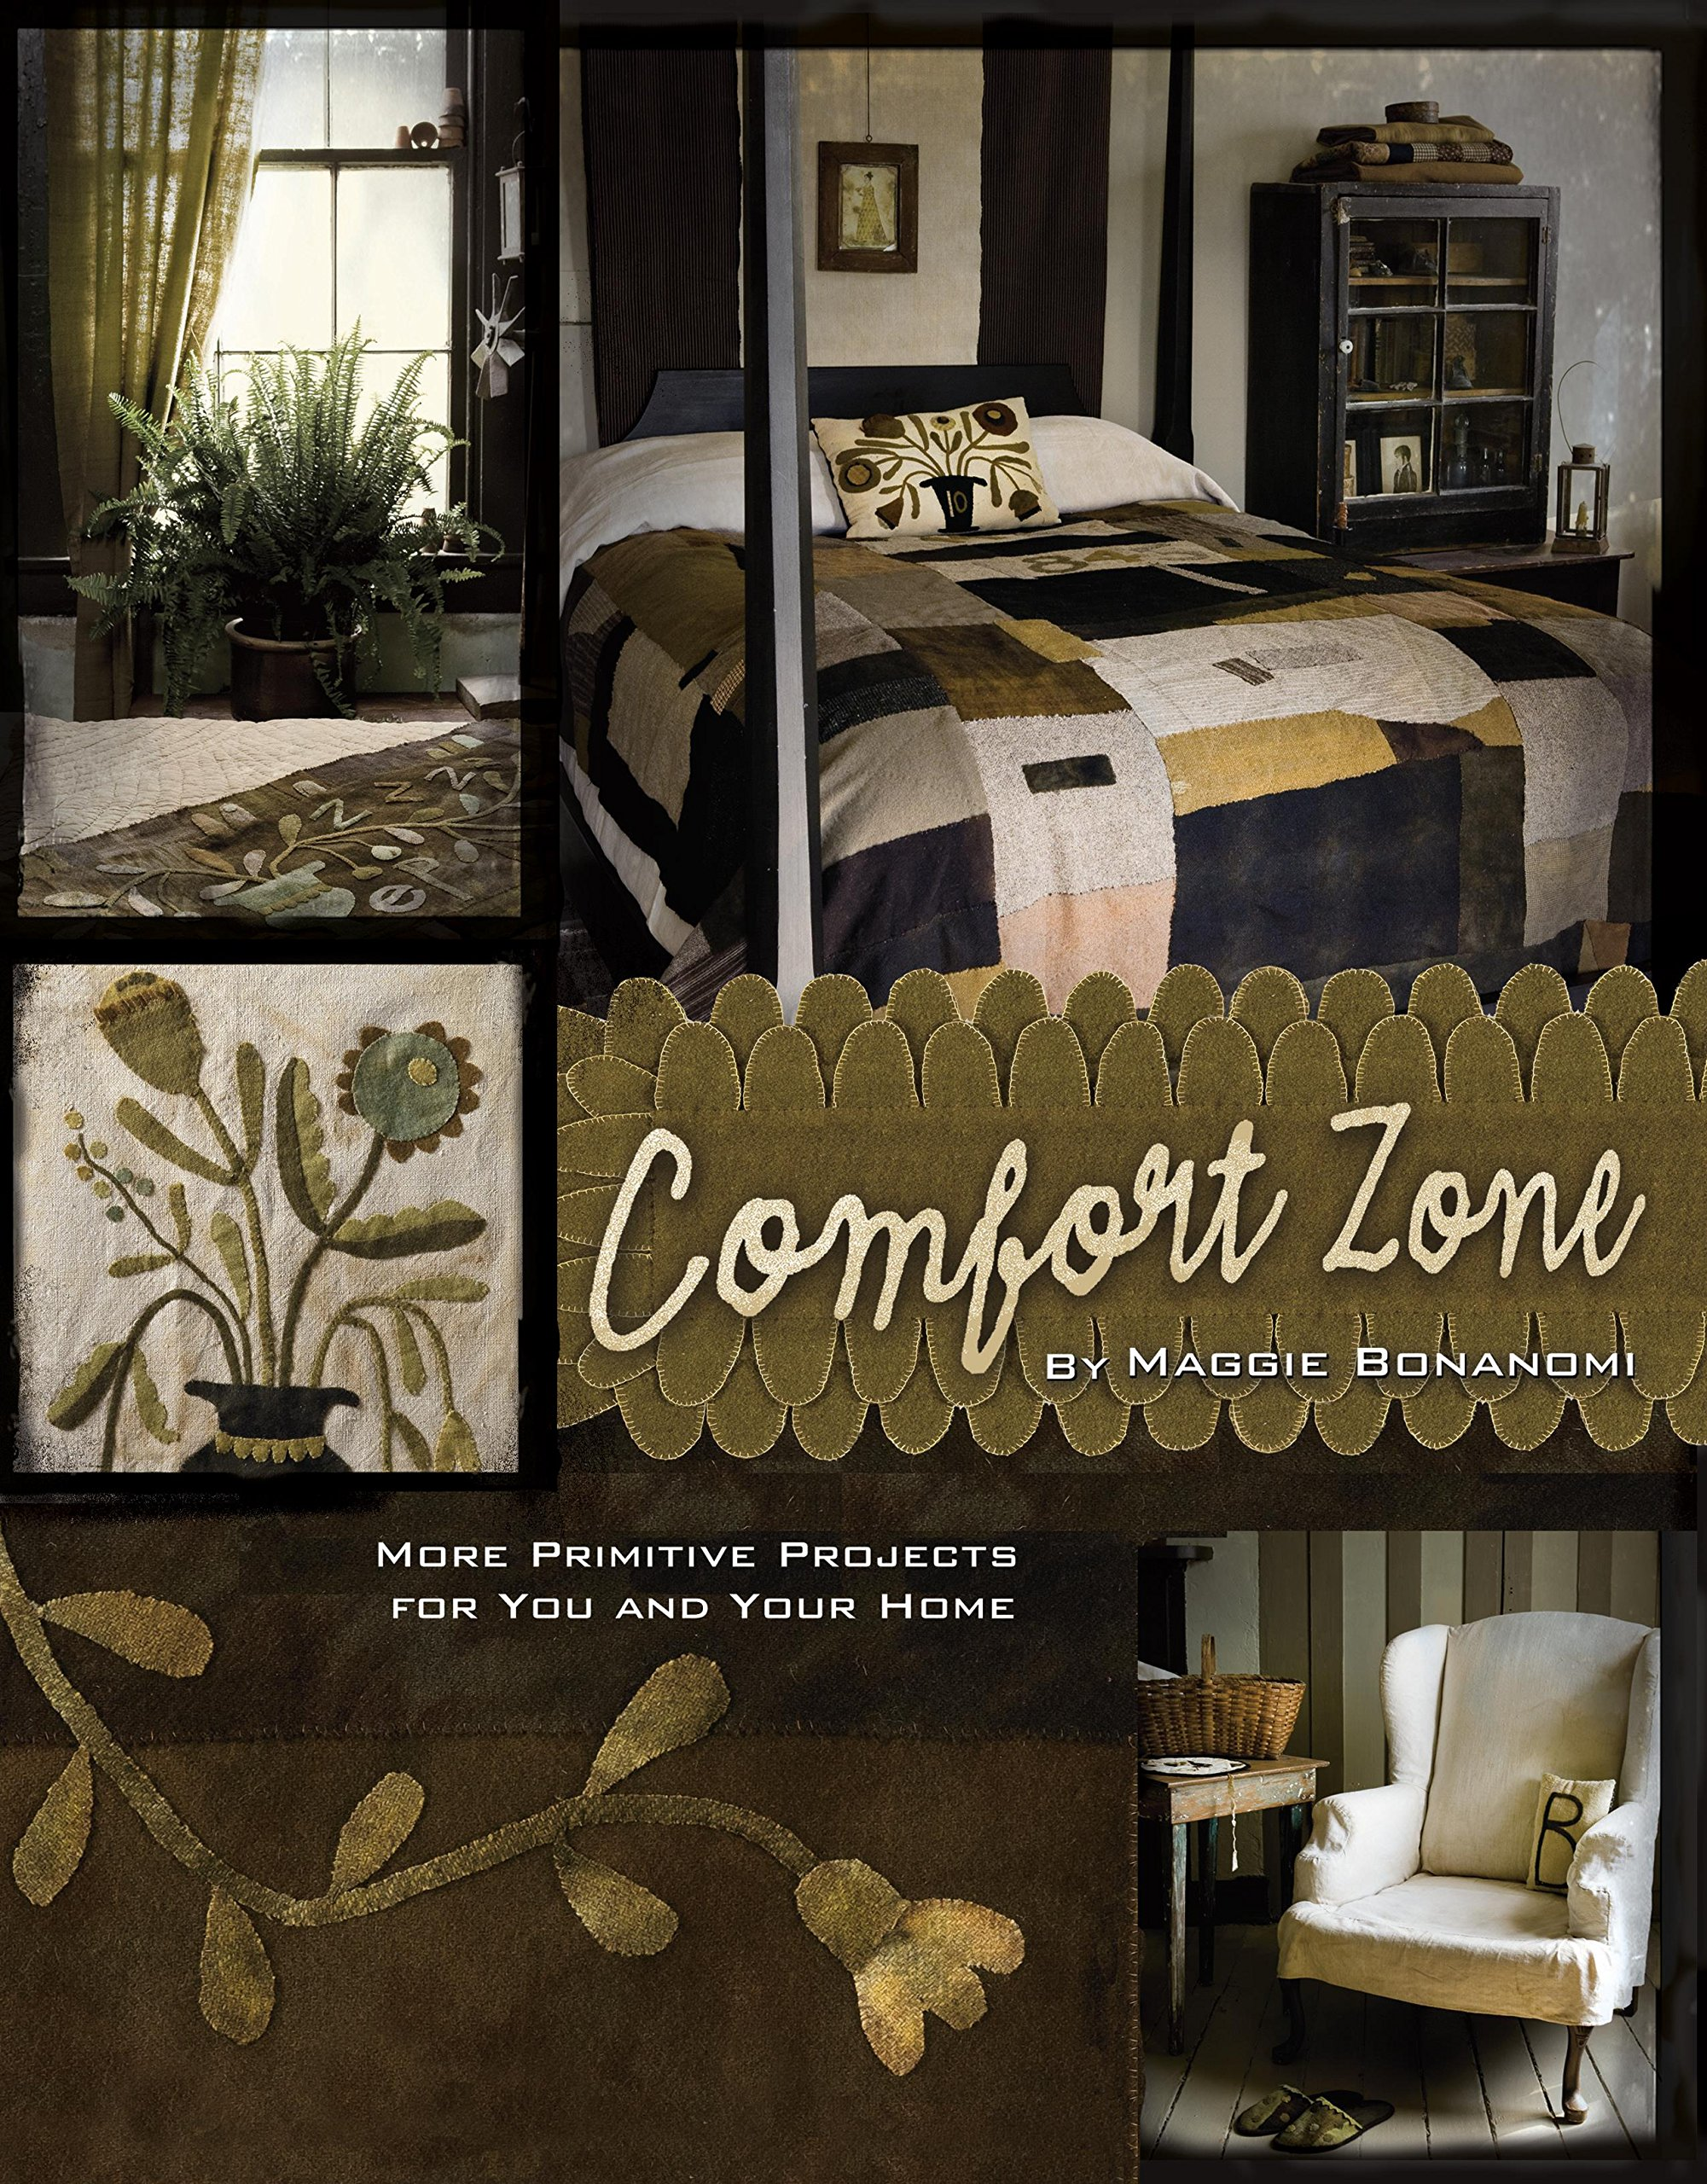 comfort zone more primitive projects for you and your home comfort zone more primitive projects for you and your home maggie bonanomi 9781935362494 amazon com books